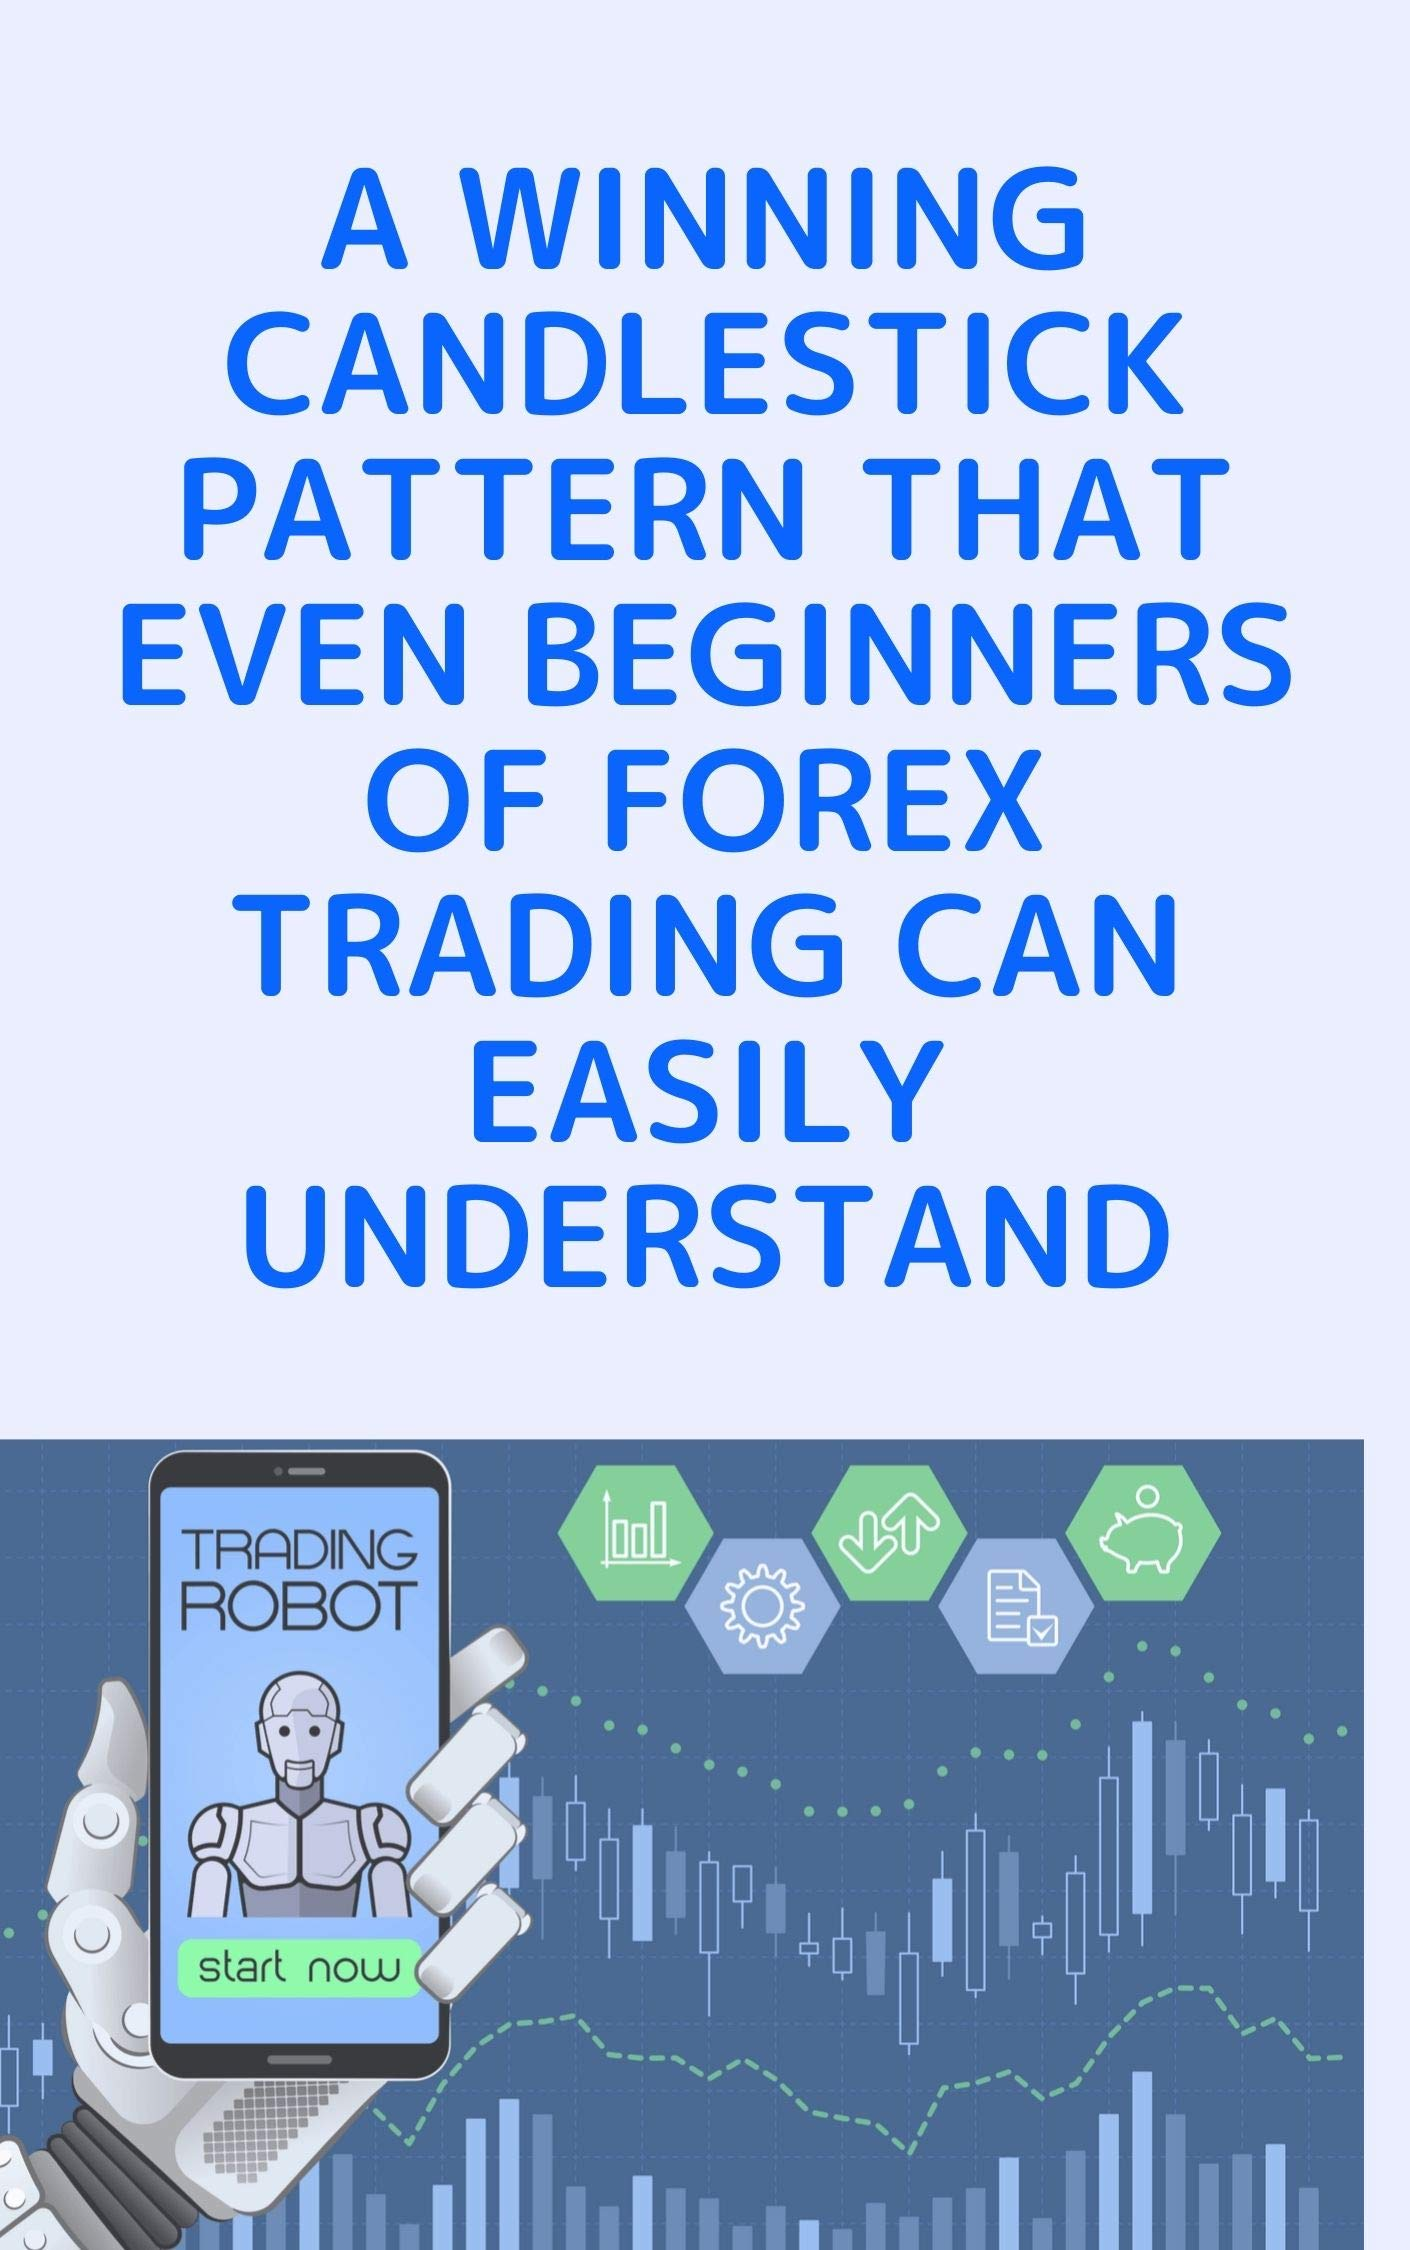 A winning candlestick pattern that even beginners of forex trading can easily understand